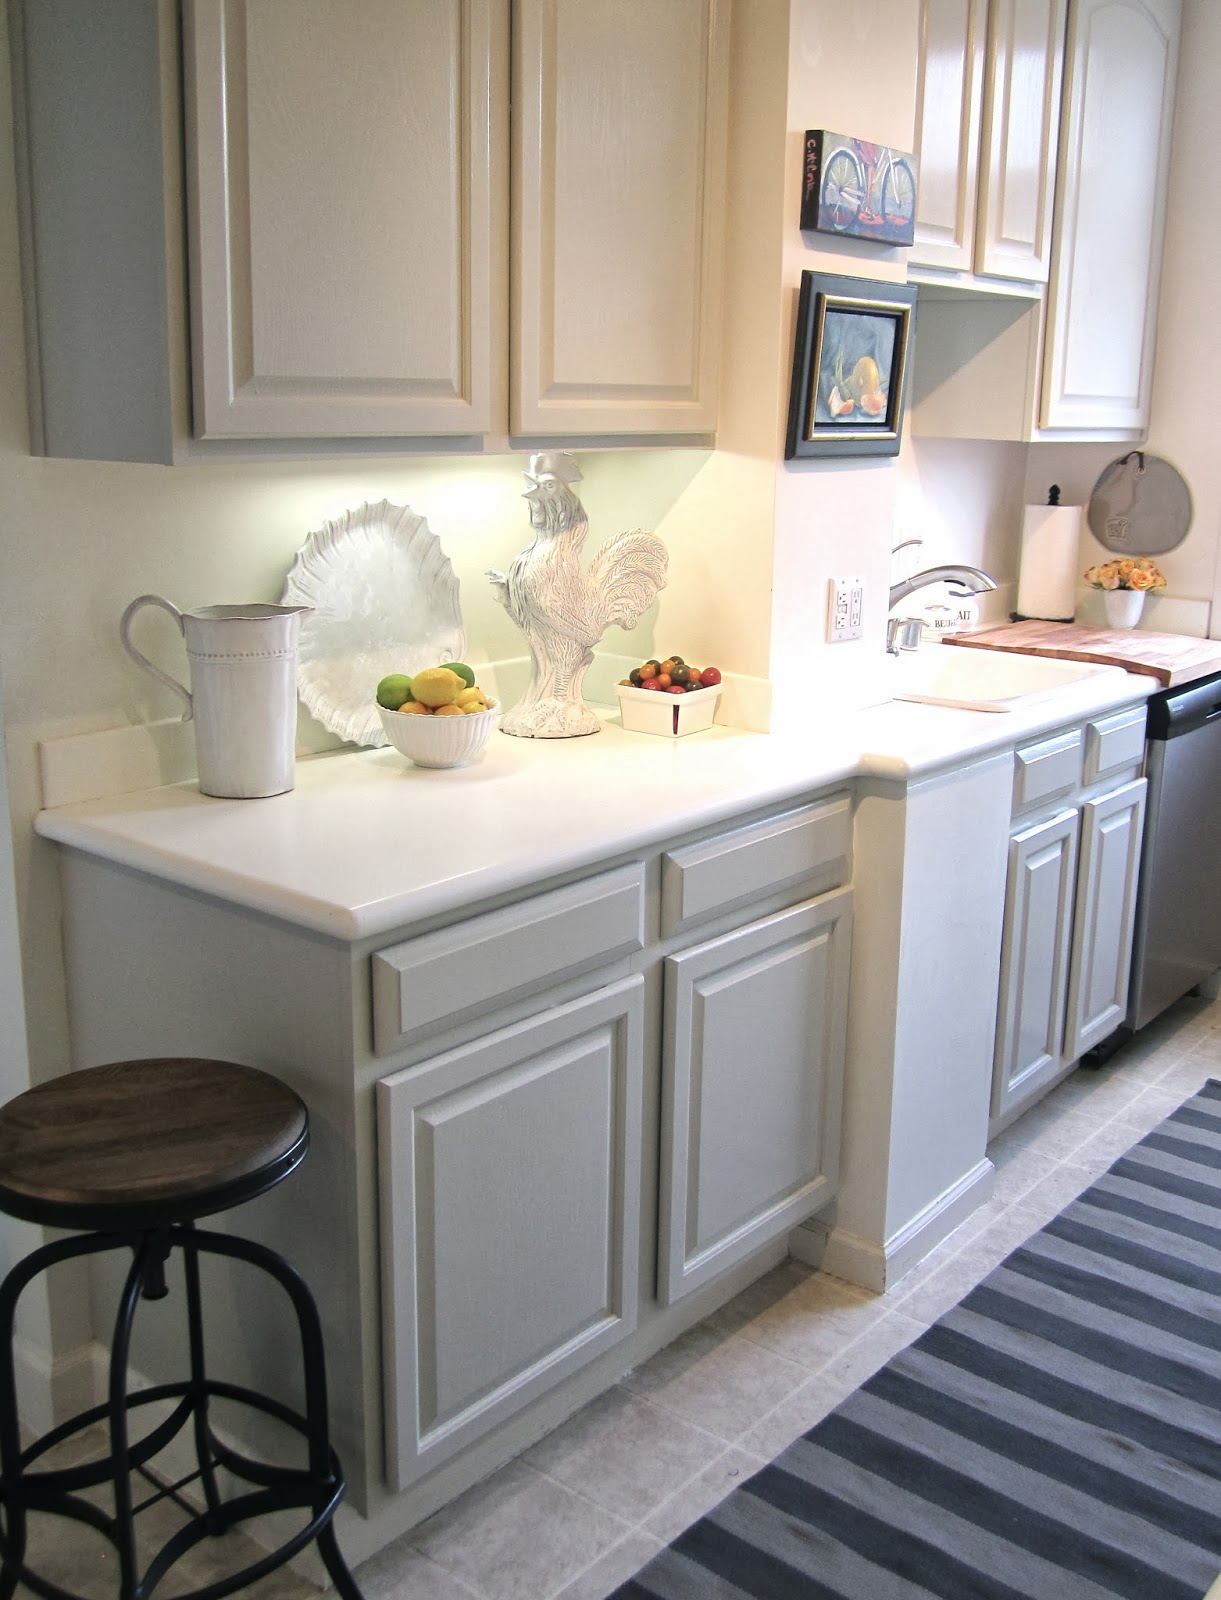 Classic • Casual • Home: Small Kitchen Updates